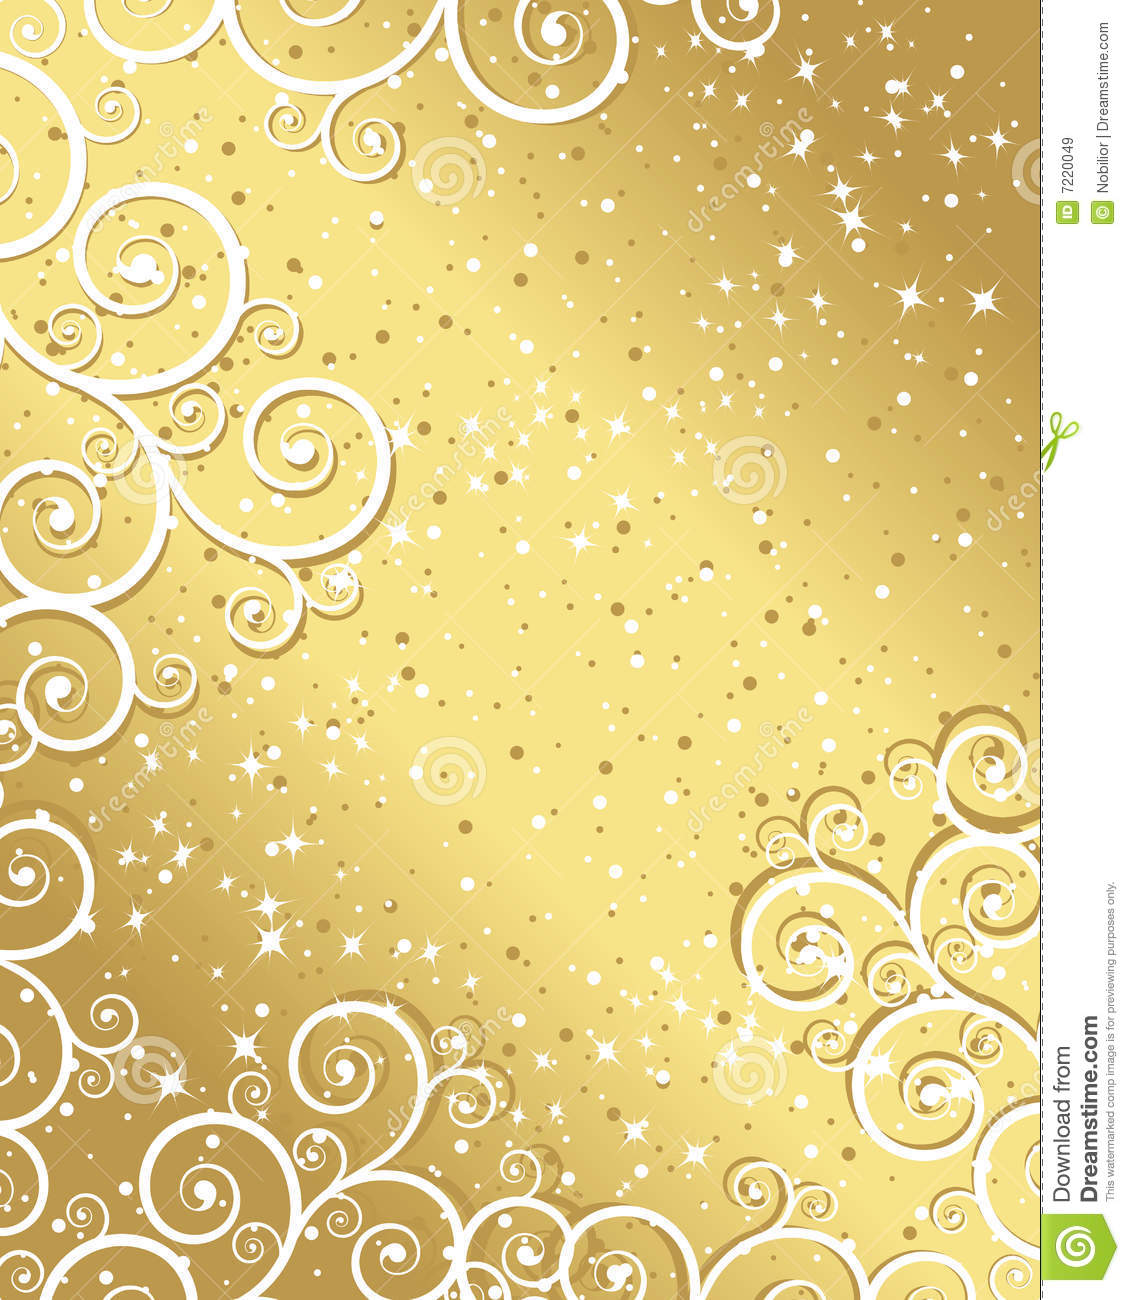 Gold Christmas Background Royalty Free Stock Images - Image: 7220049